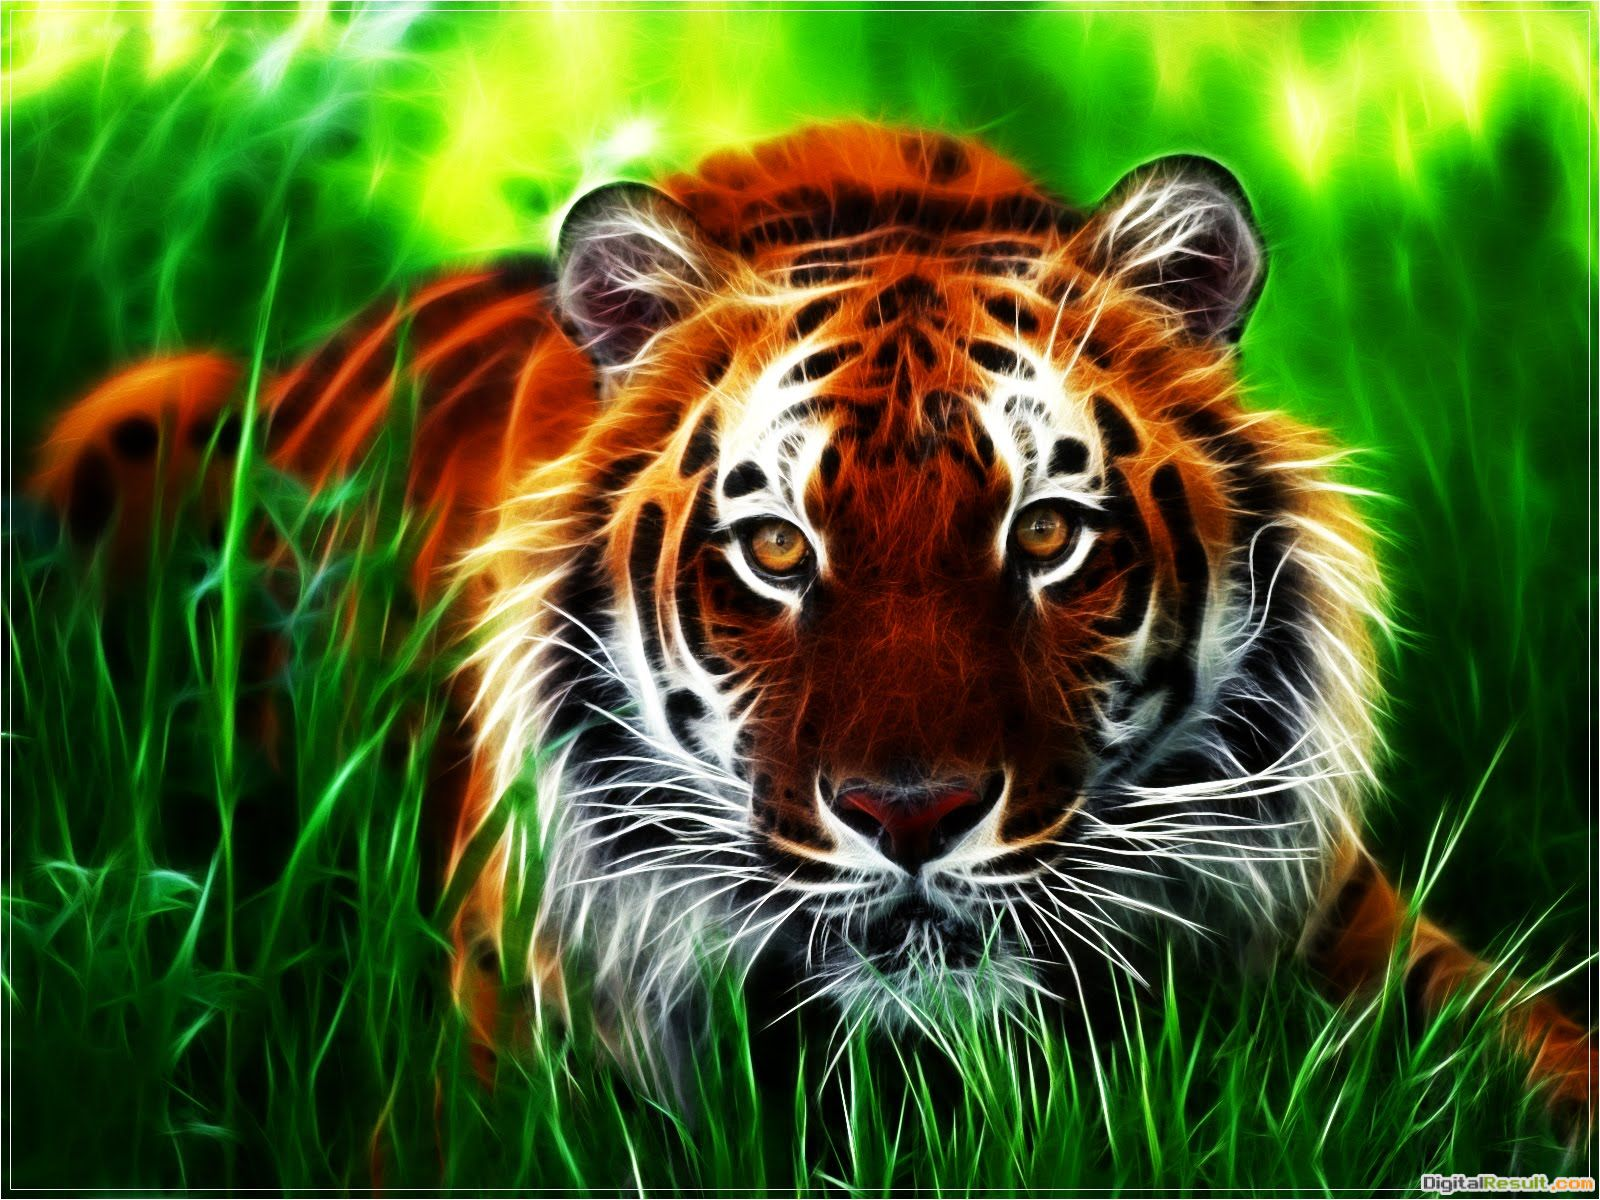 Tiger wallpapers 1706